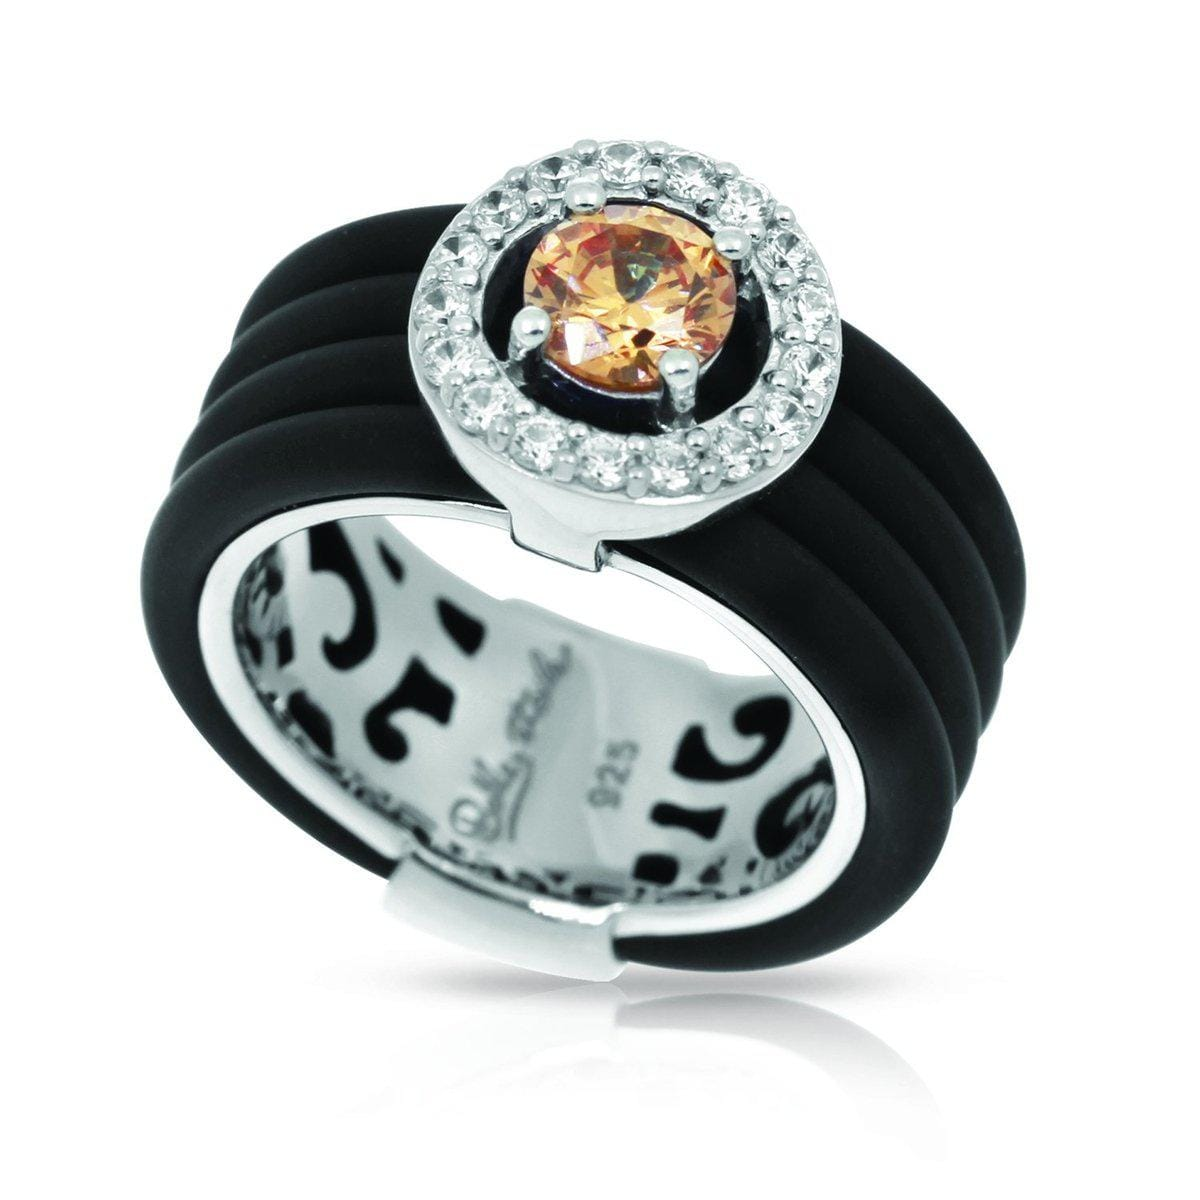 Circa Black and Champagne Ring-Belle Etoile-Renee Taylor Gallery